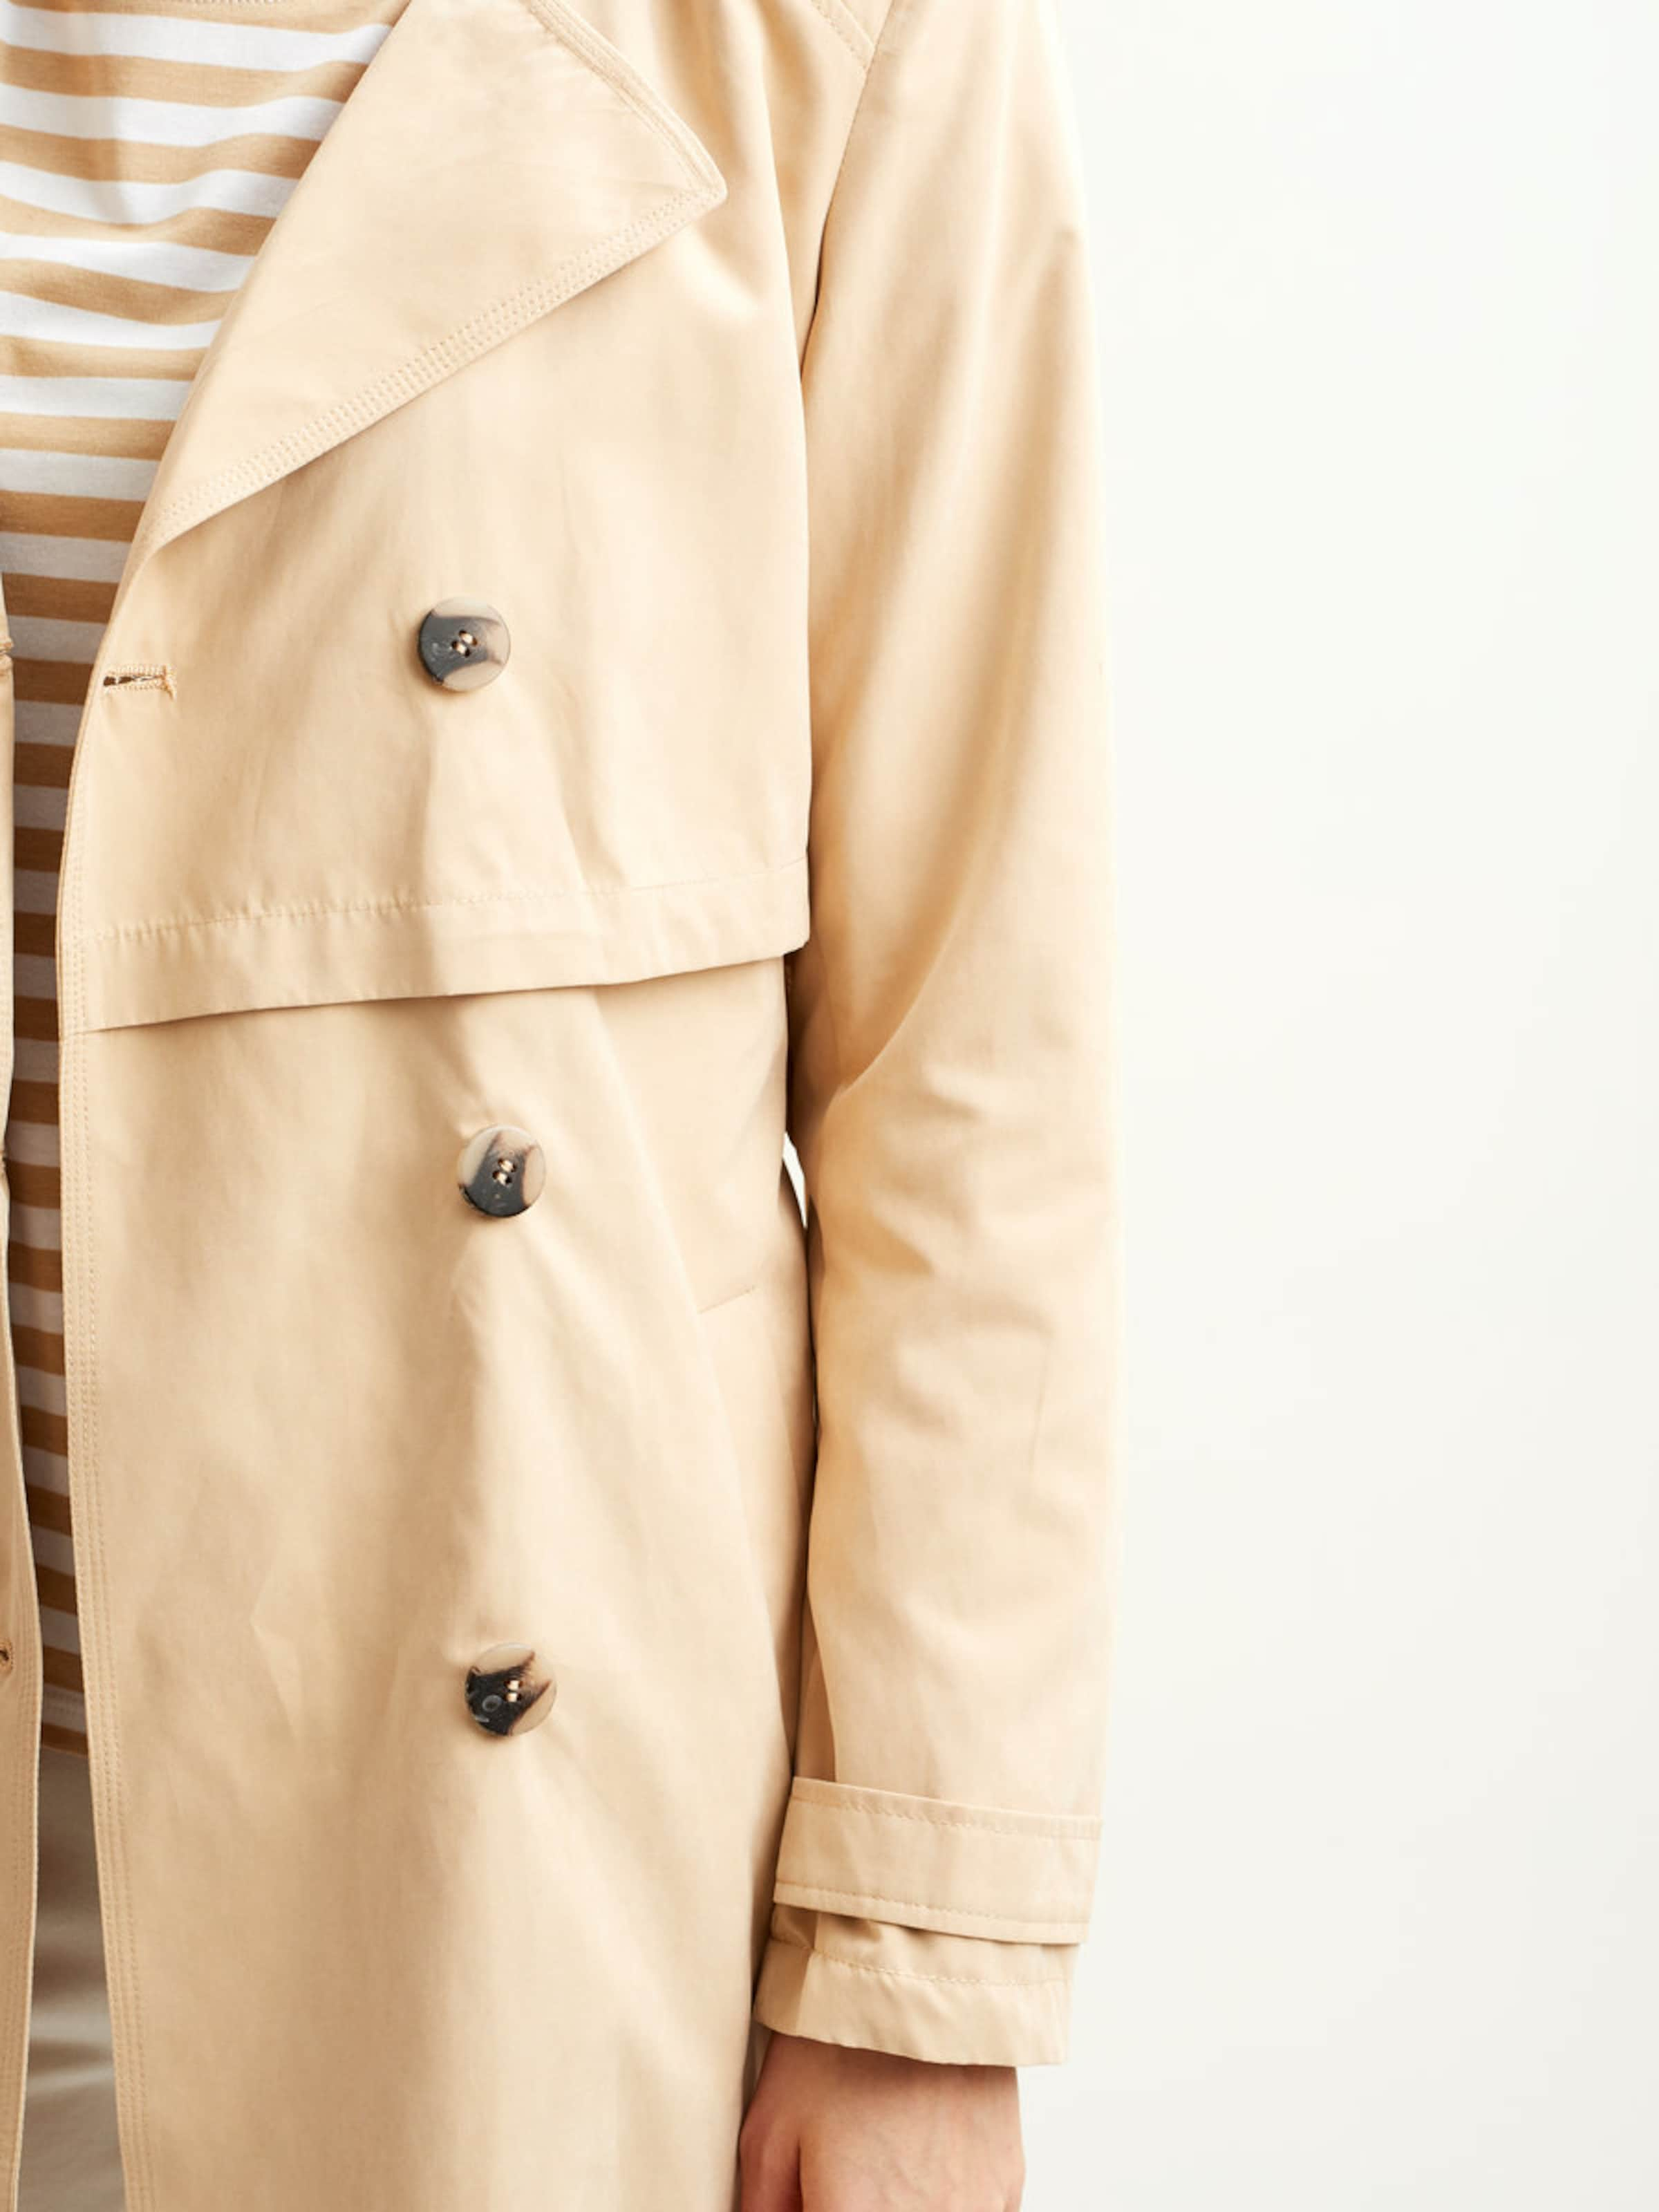 VILA Trenchcoat 'VIMOLLY' Trenchcoat VILA VILA Trenchcoat 'VIMOLLY' 0d6qxaw